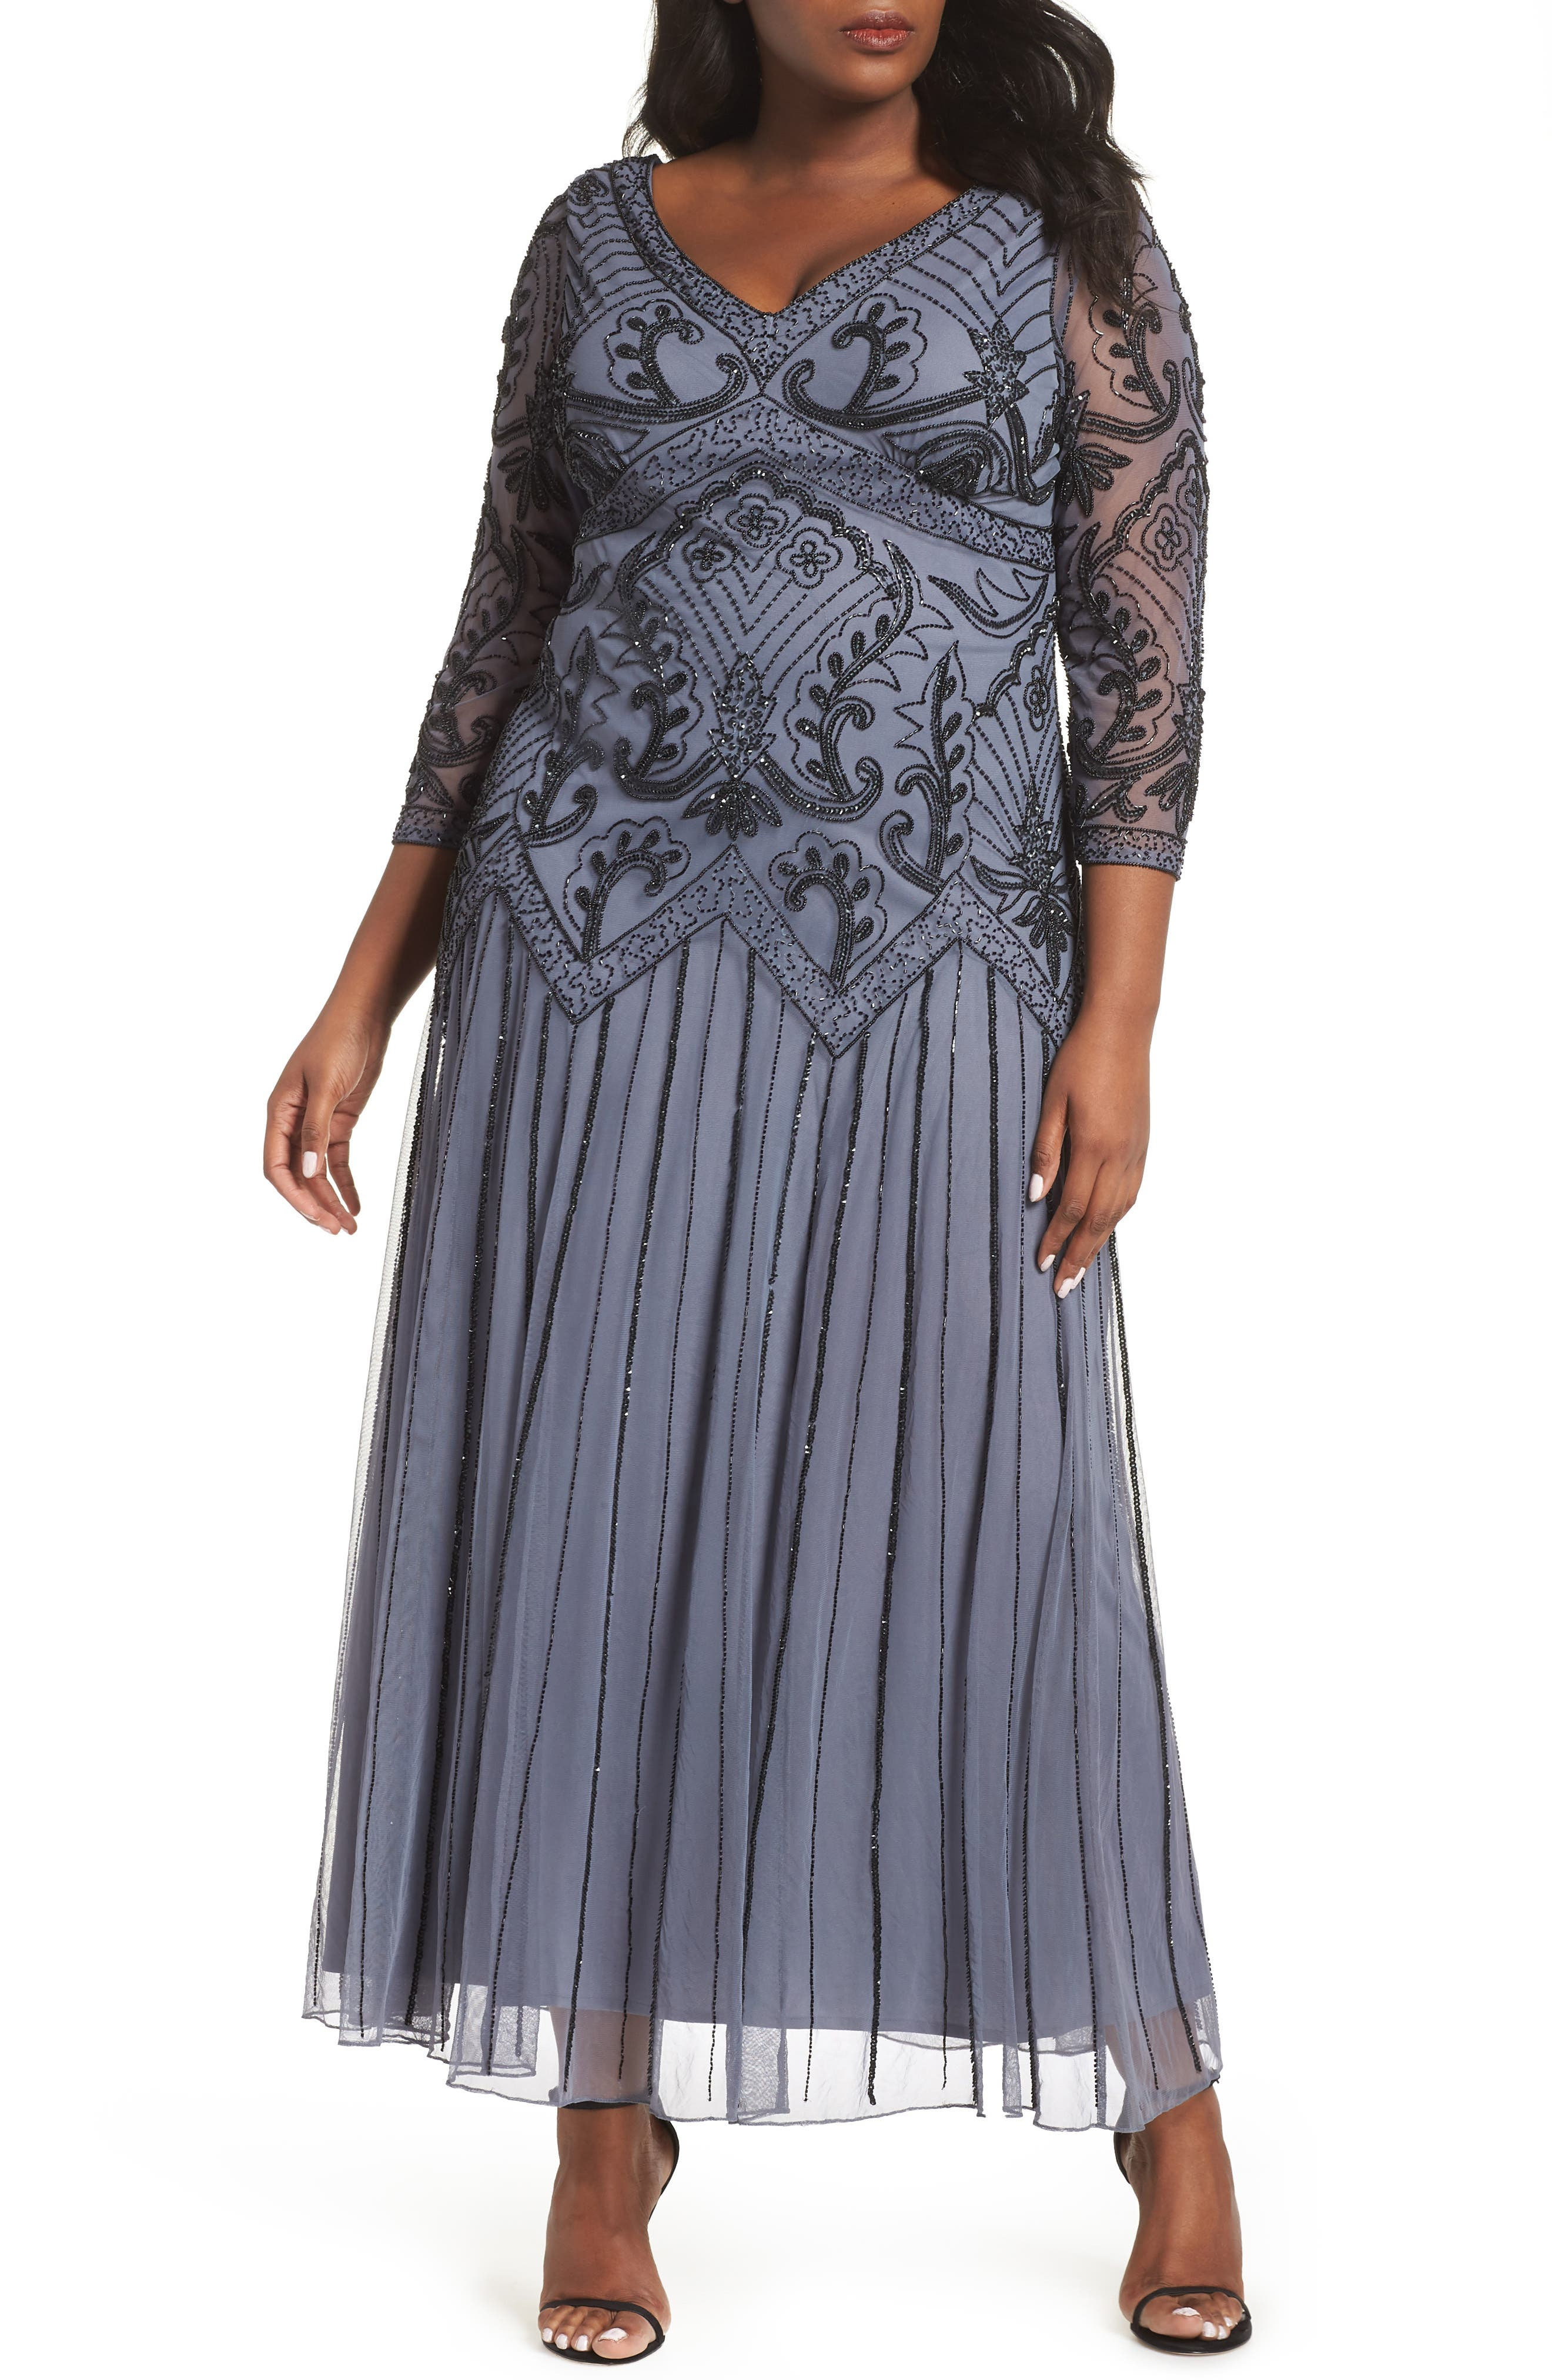 1920s Plus Size Flapper Dresses, Gatsby Dresses, Flapper Costumes Plus Size Womens Pisarro Nights Embellished Double V-Neck Long Dress Size 24W - Grey $142.80 AT vintagedancer.com